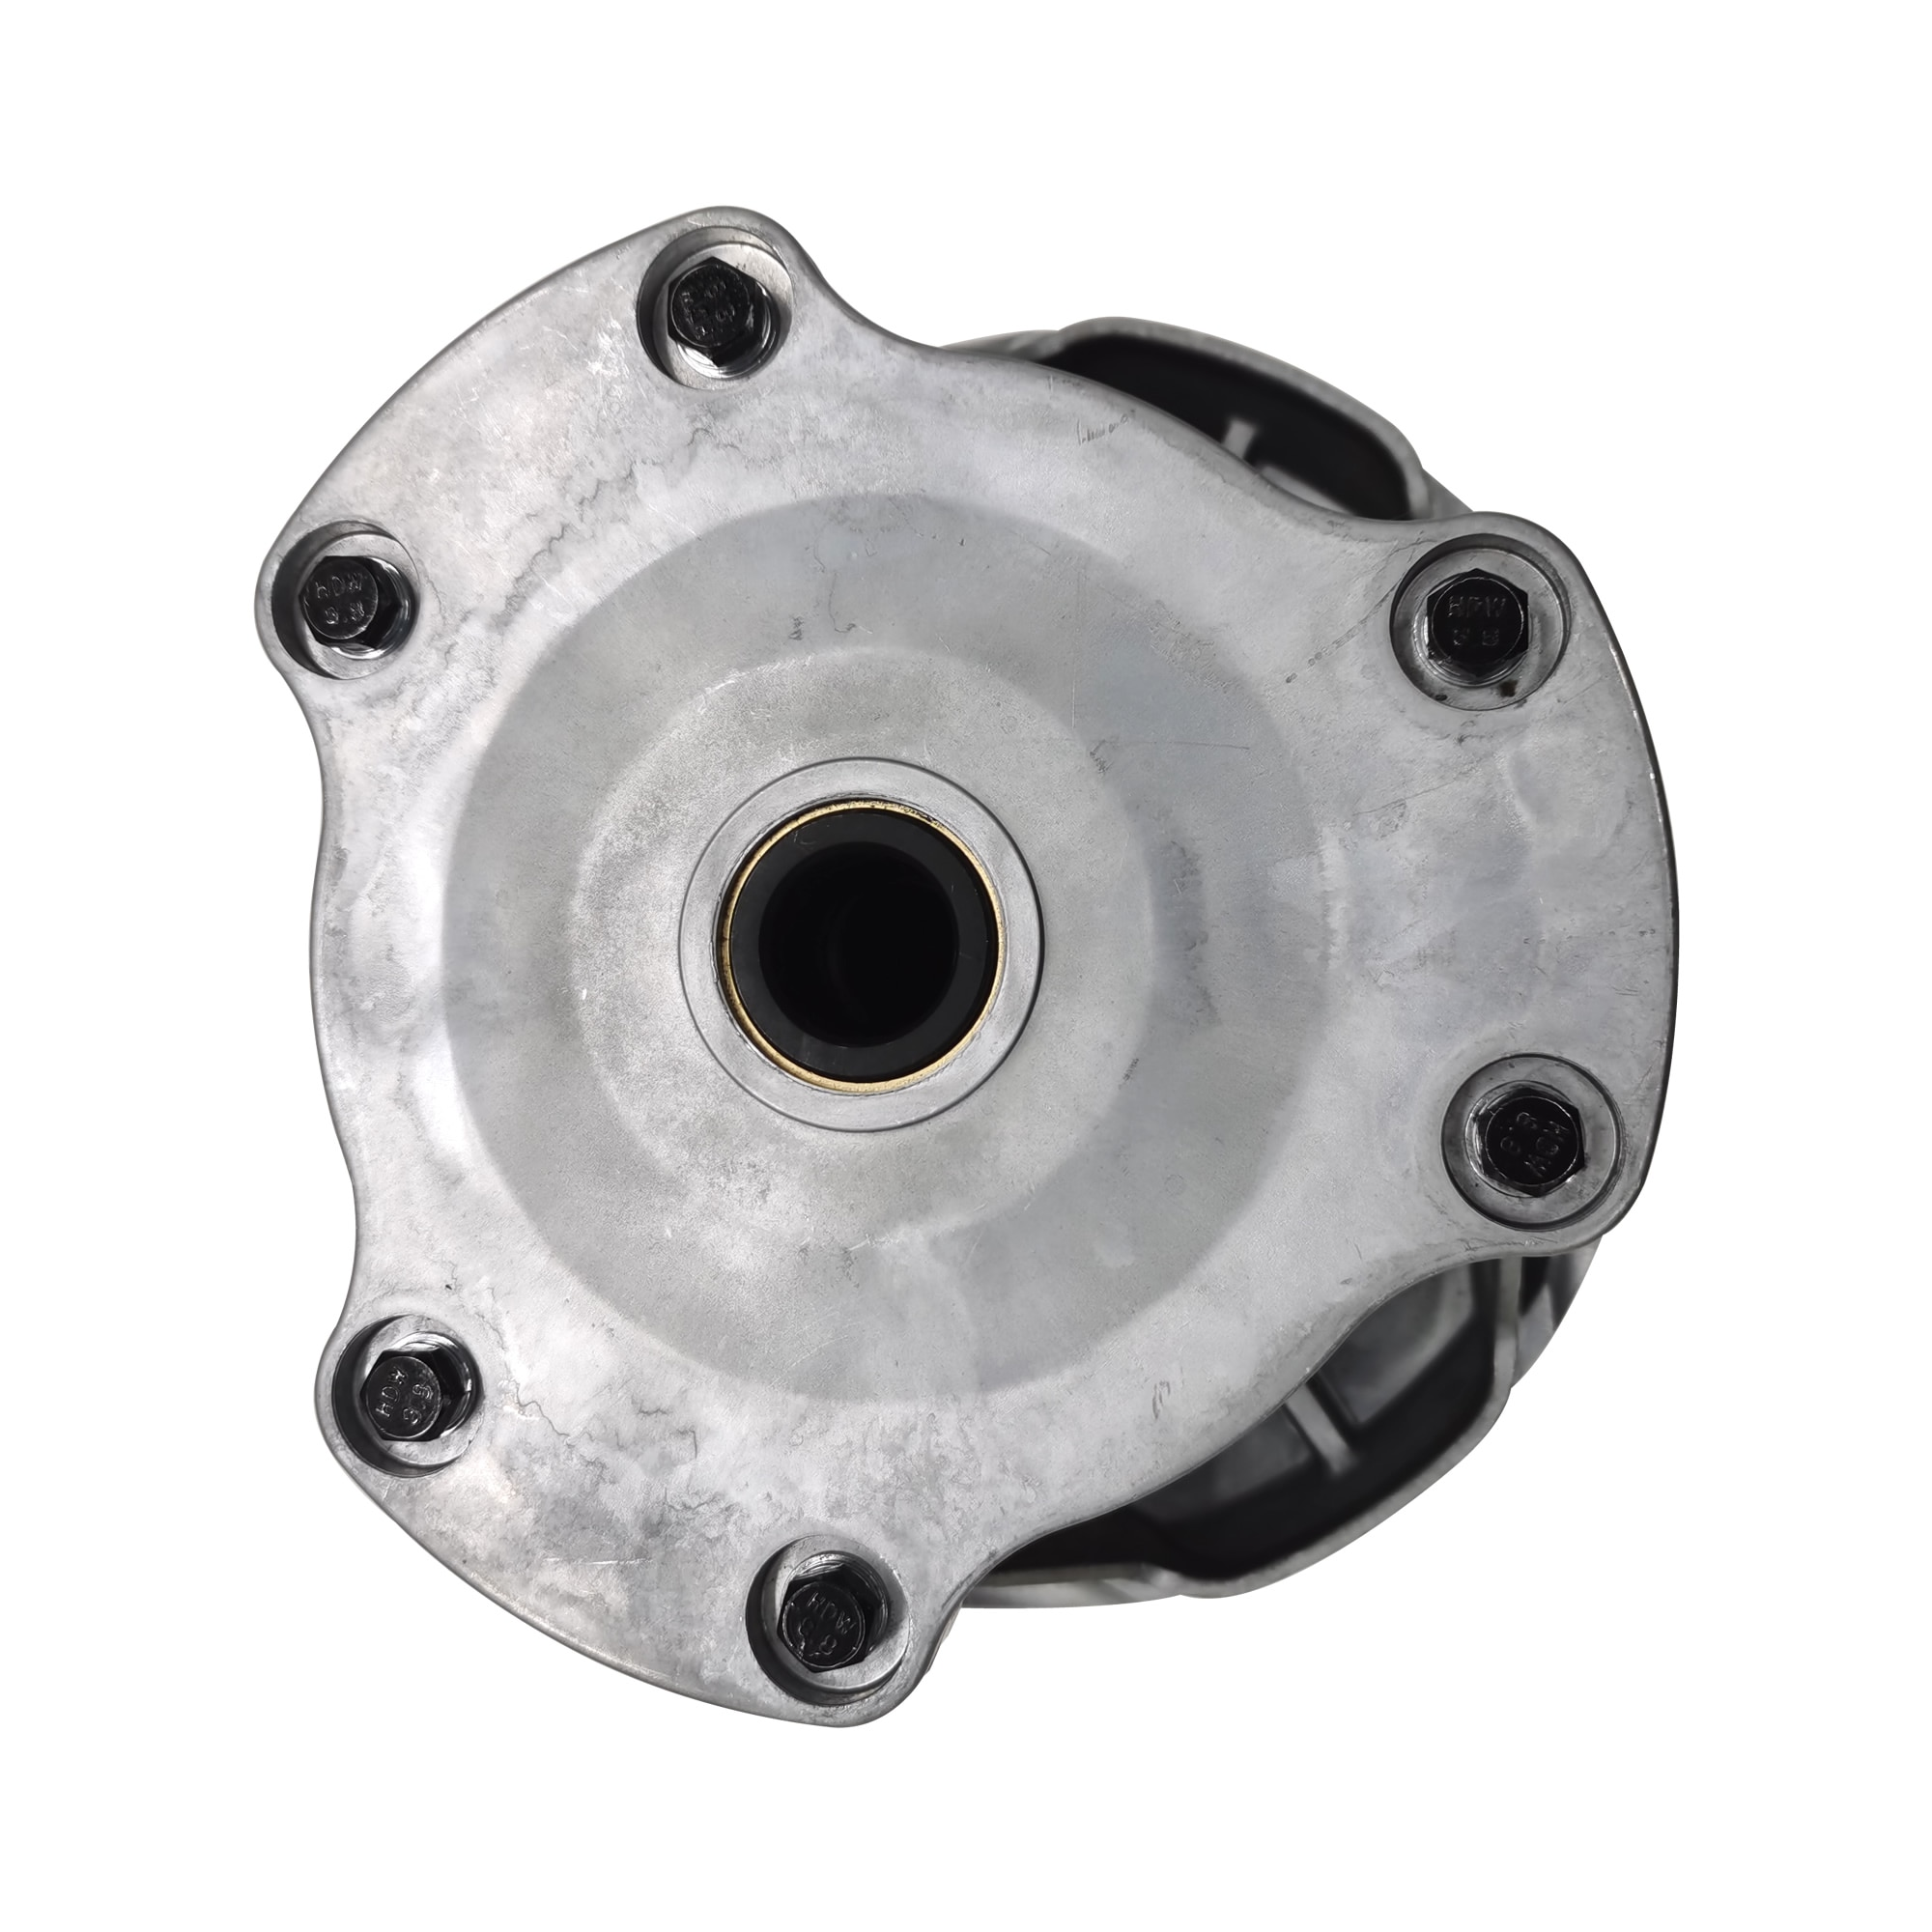 Primary Drive Clutch HD Puller Tool Replacement for 14-19 Polaris RZR 1000 XP enlarge